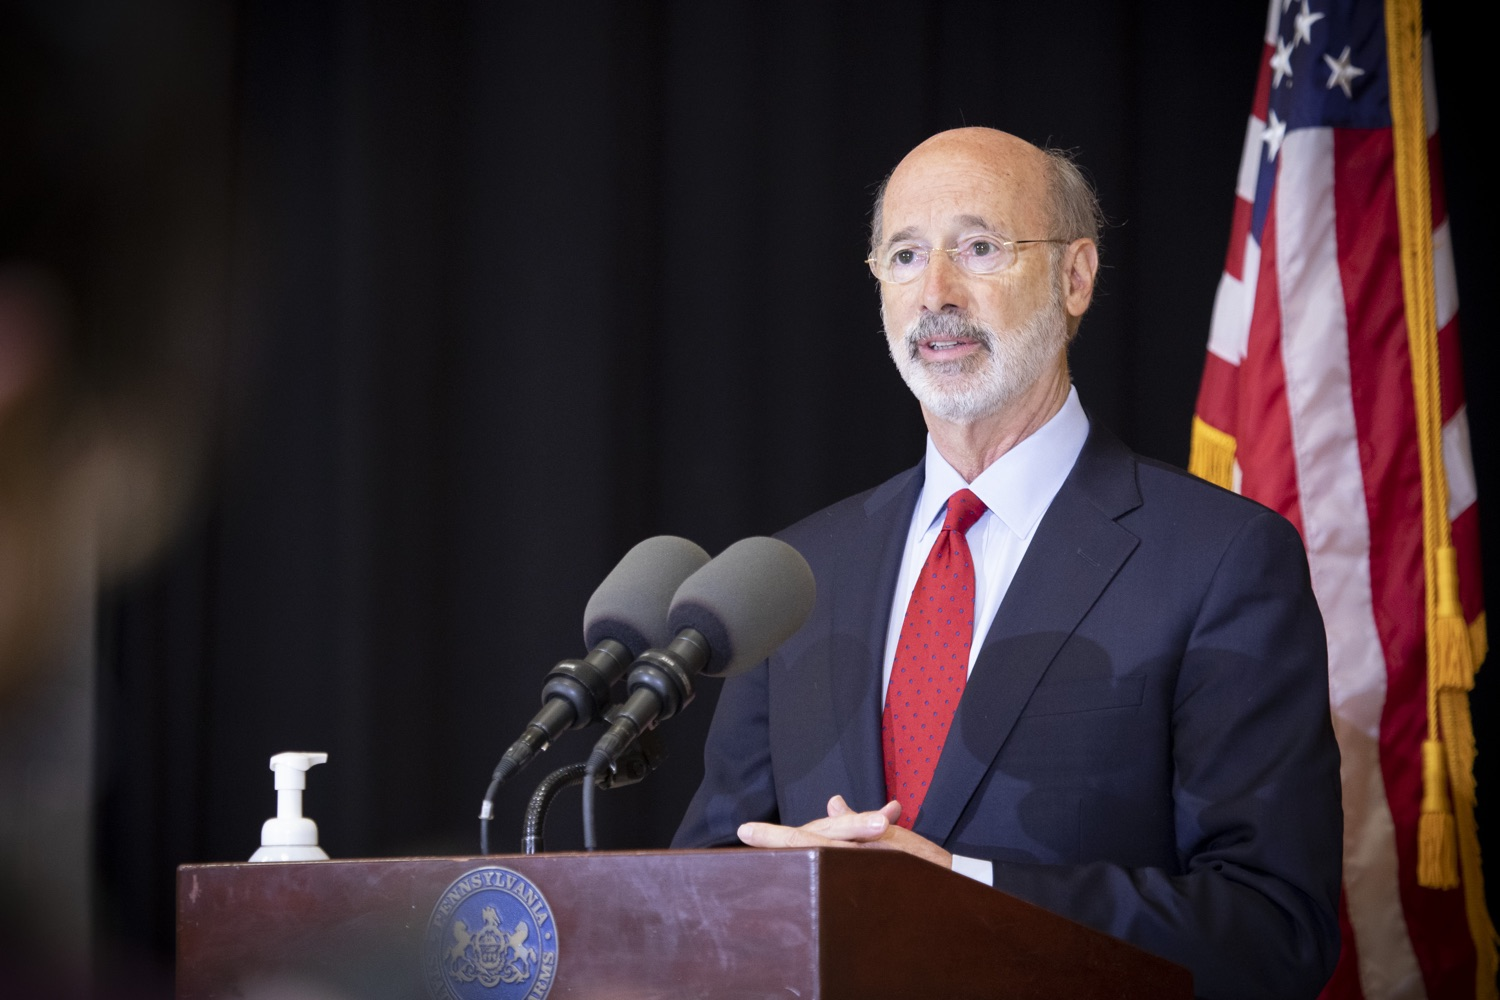 "<a href=""https://filesource.wostreaming.net/commonwealthofpa/photo/18310_gov_adult_use_cannabis_dz_015.jpg"" target=""_blank"">⇣ Download Photo<br></a>Governor Tom Wolf speaks to the press.Governor Tom Wolf visited The Mountain Center in Tobyhanna, Monroe County today to talk about the economic growth potential and restorative justice benefits of legalizing adult-use cannabis, something the state General Assembly has not yet done despite multiple requests from the governor and Lieutenant Governor John Fetterman to take up legislation this fall.  Tobyhanna, PA  October 13, 2020"